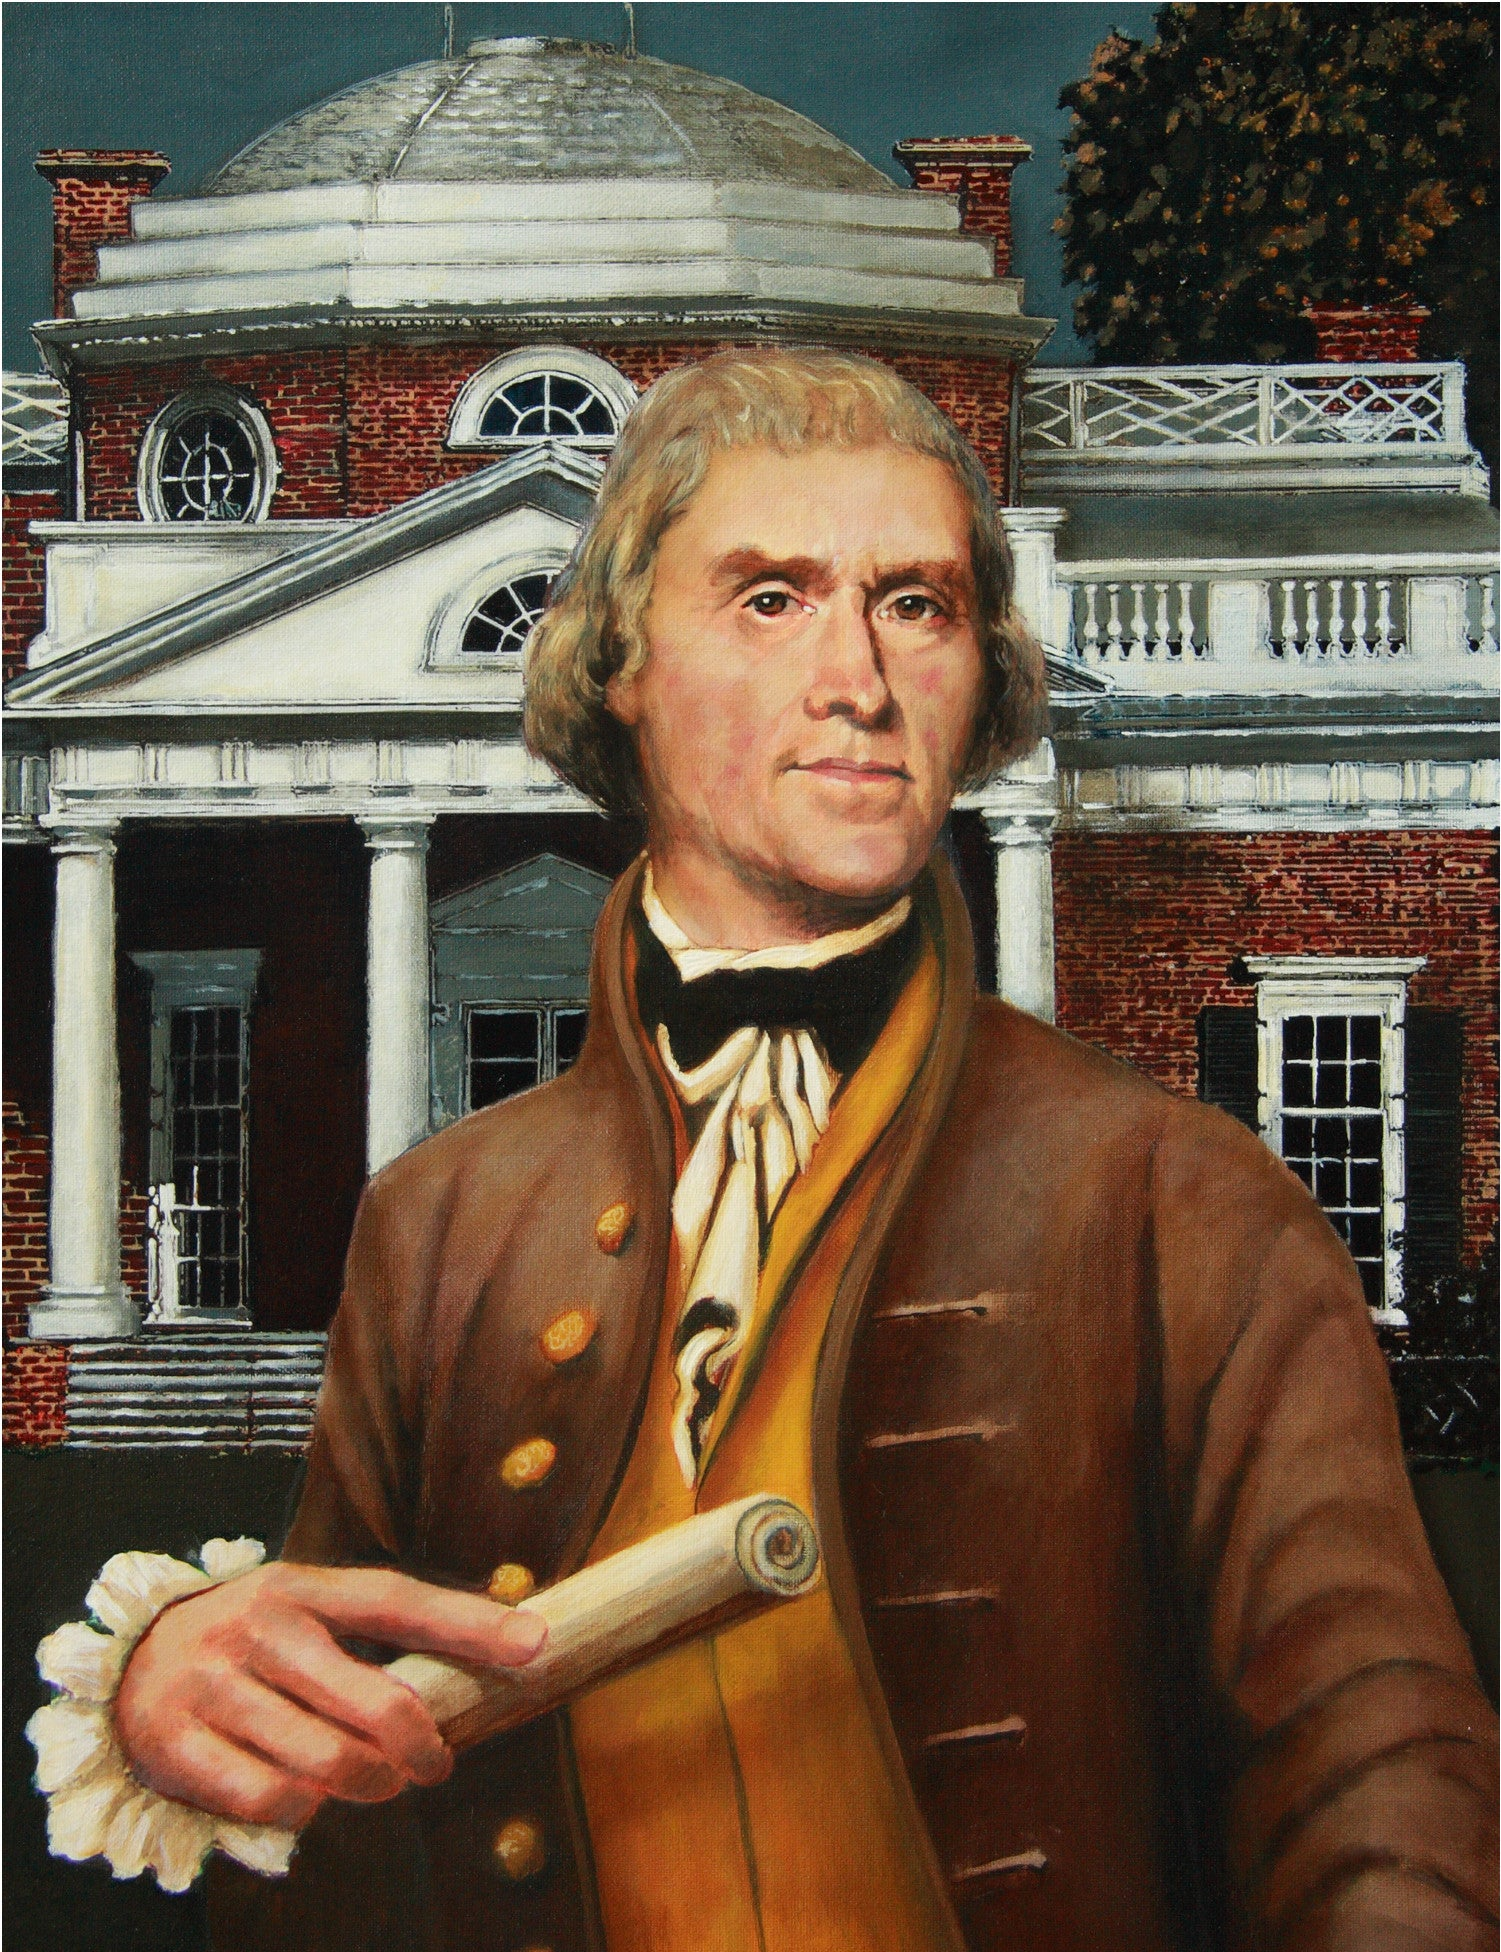 Thomas Jefferson in front of Monticello by artist Trevor Goring